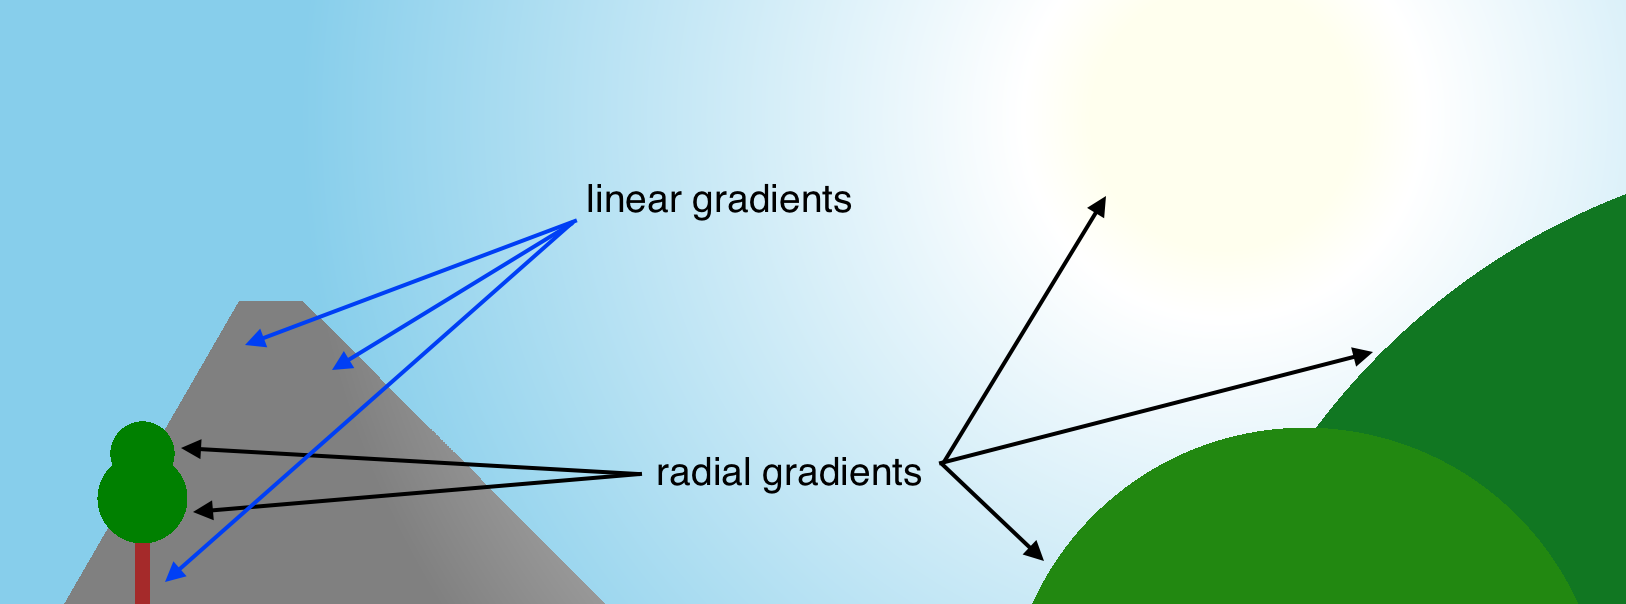 Screenshot of the sky in the game with the word linear-gradient with arrows pointing to a mountain and a tree trunk; and the word radial-gradient with arrows pointing to the sun, some rounded mountains, and the treetop.